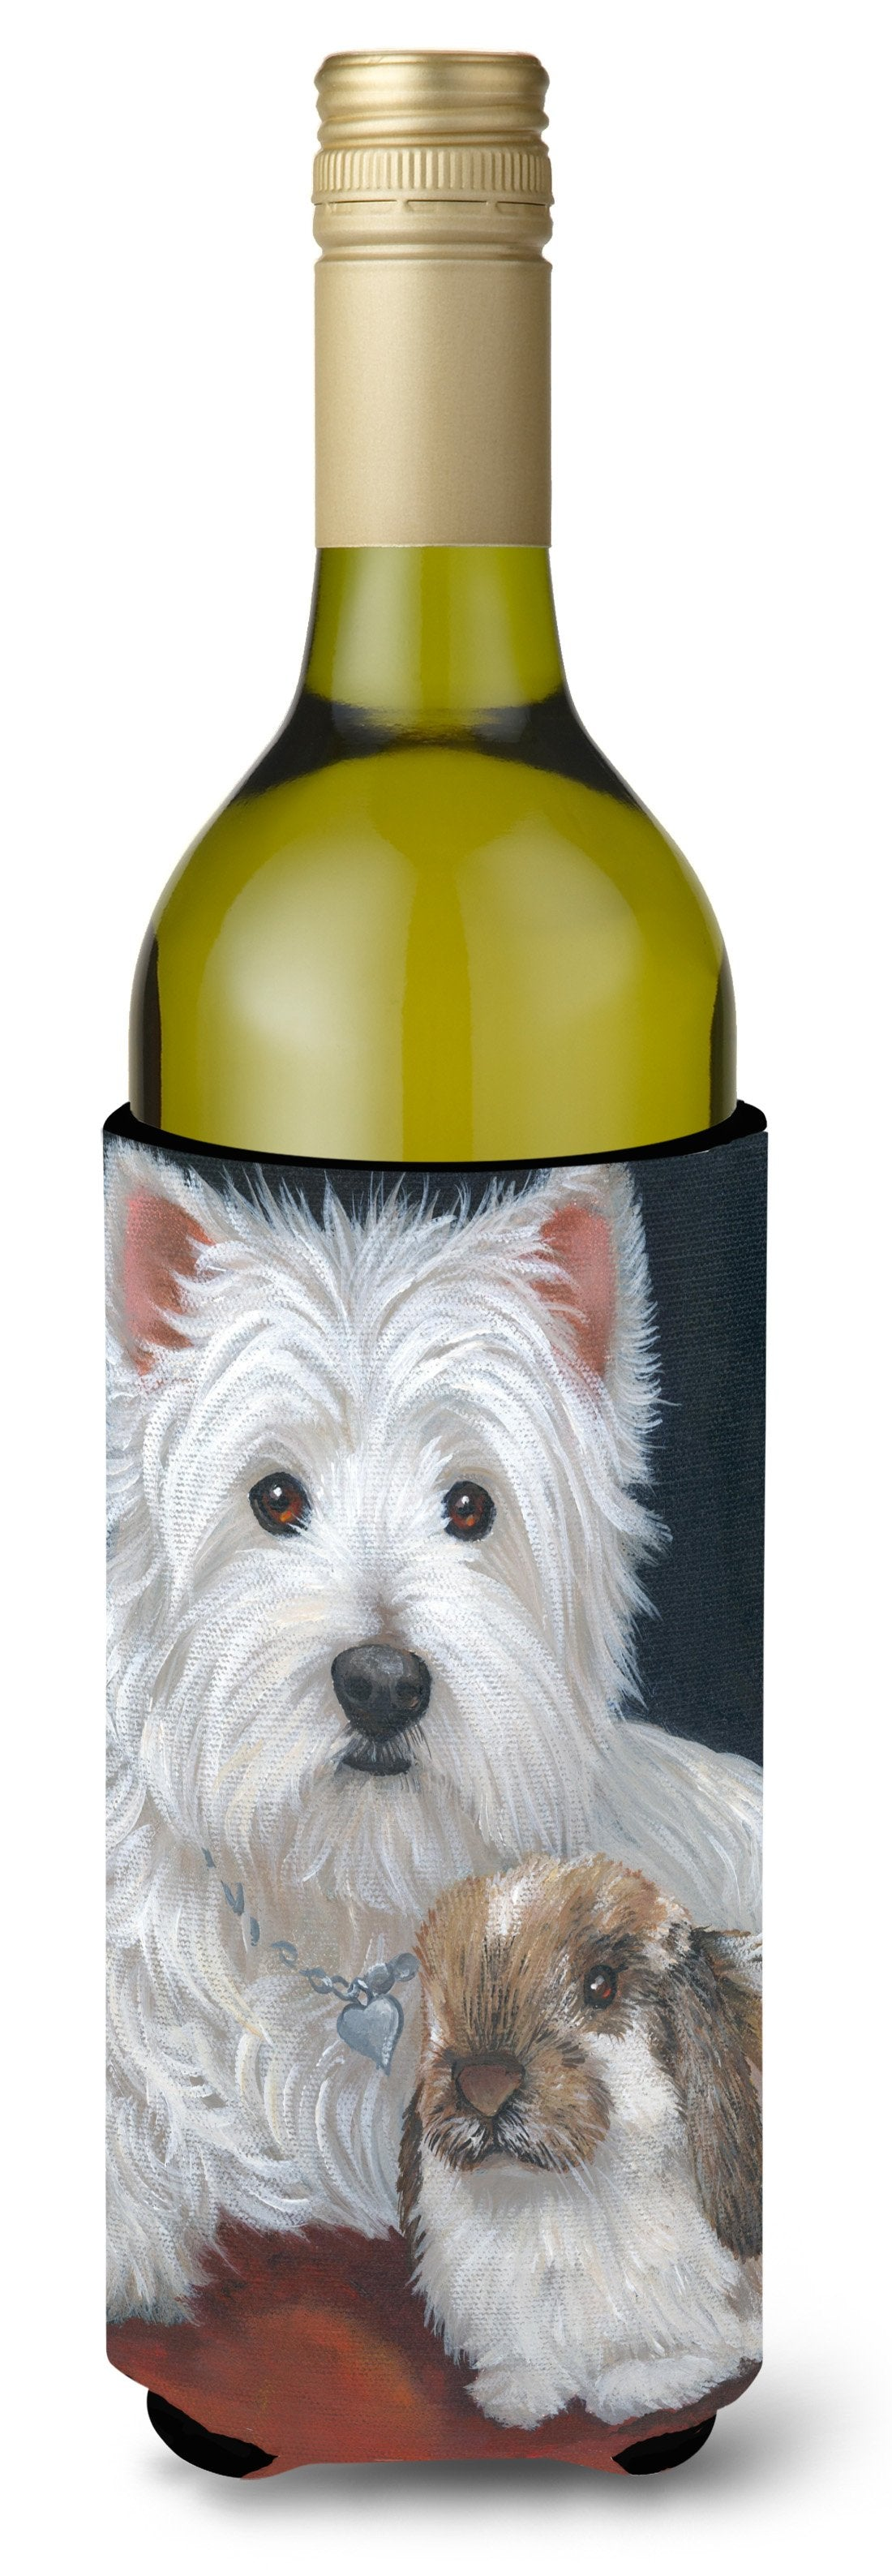 Westie Rabbit Harmony Wine Bottle Hugger PPP3207LITERK by Caroline's Treasures